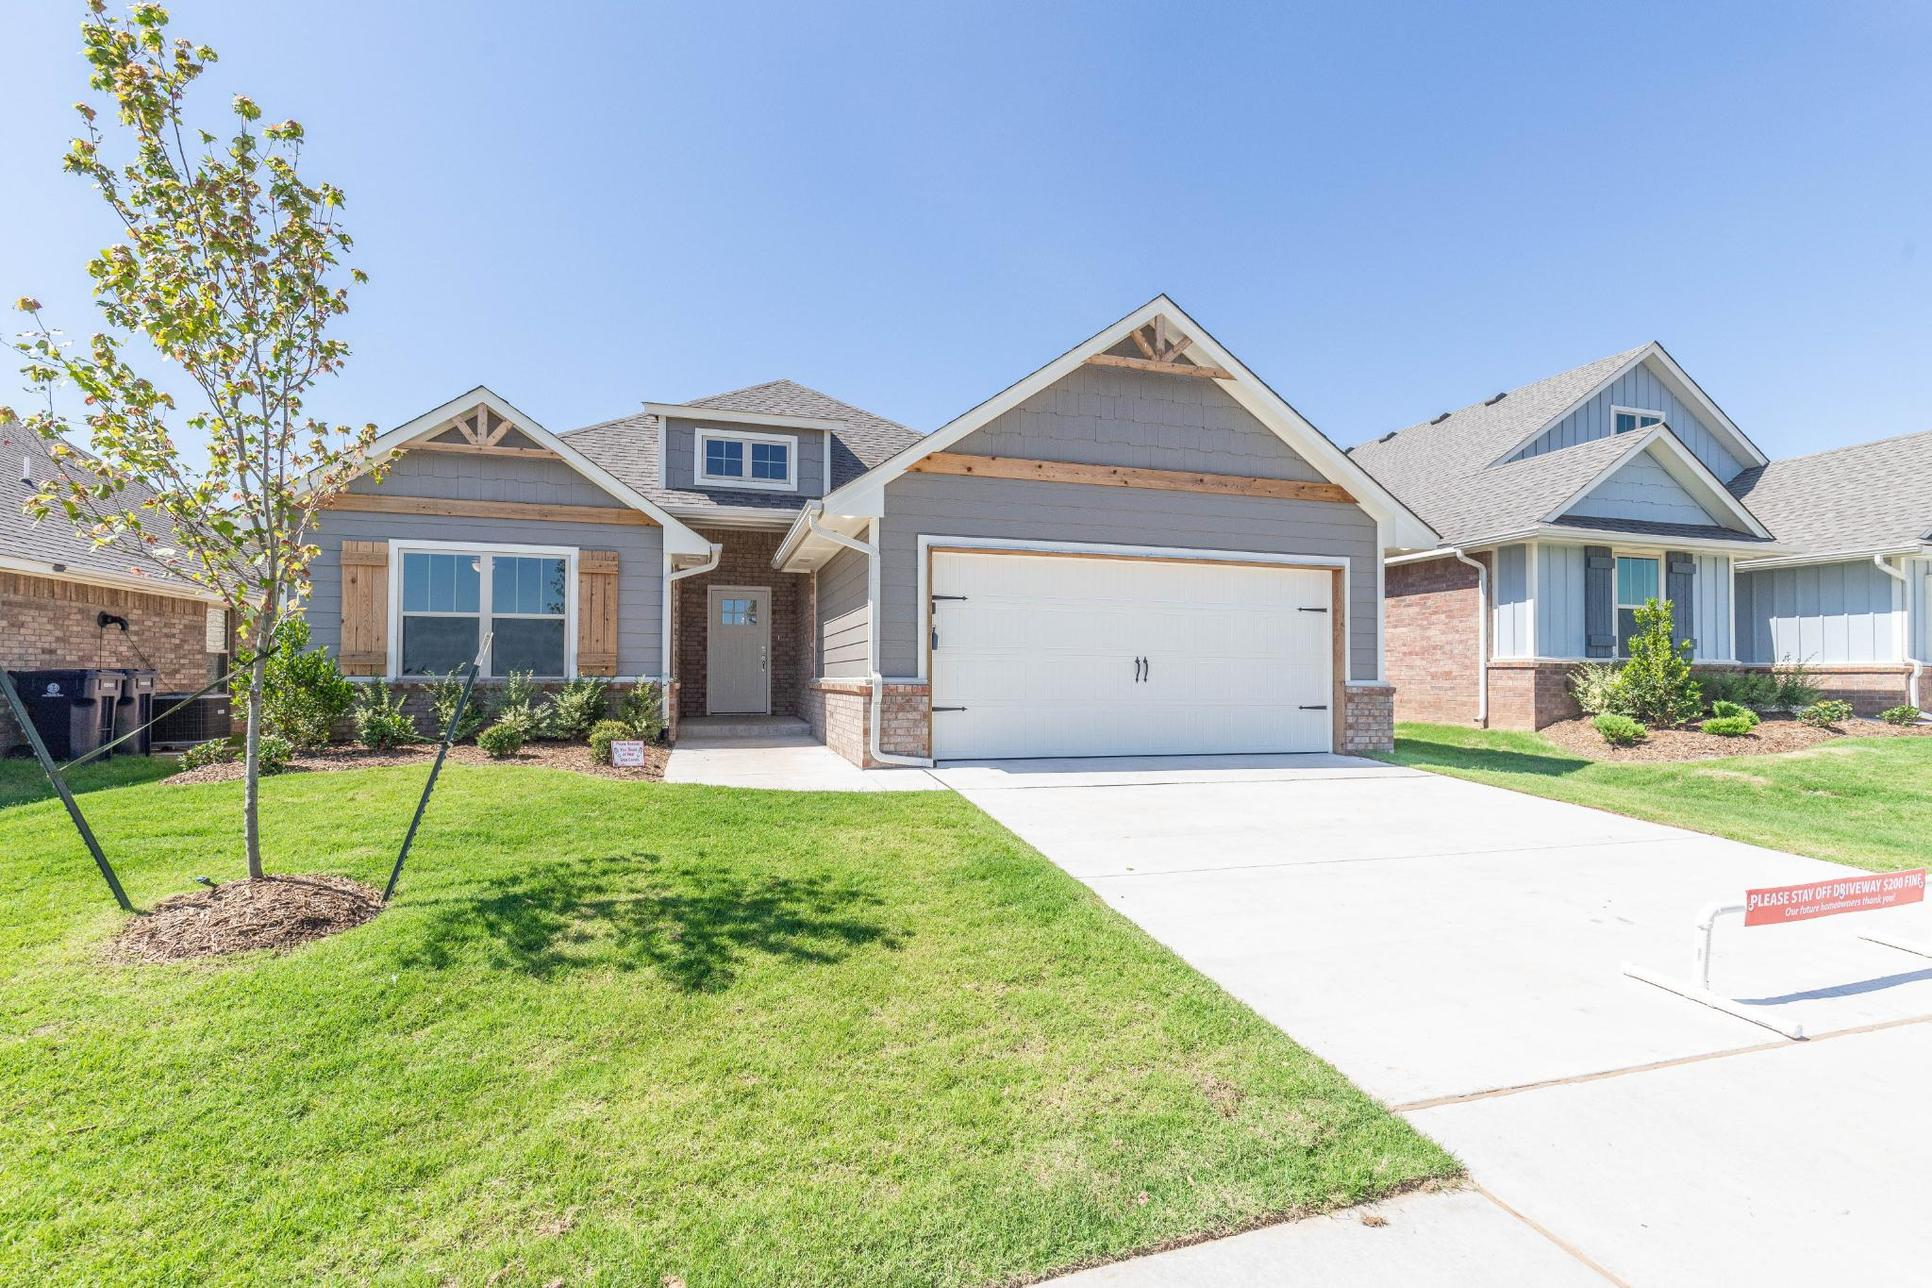 Homes by Taber Julie Floor Plan - 9112 NW 119th St